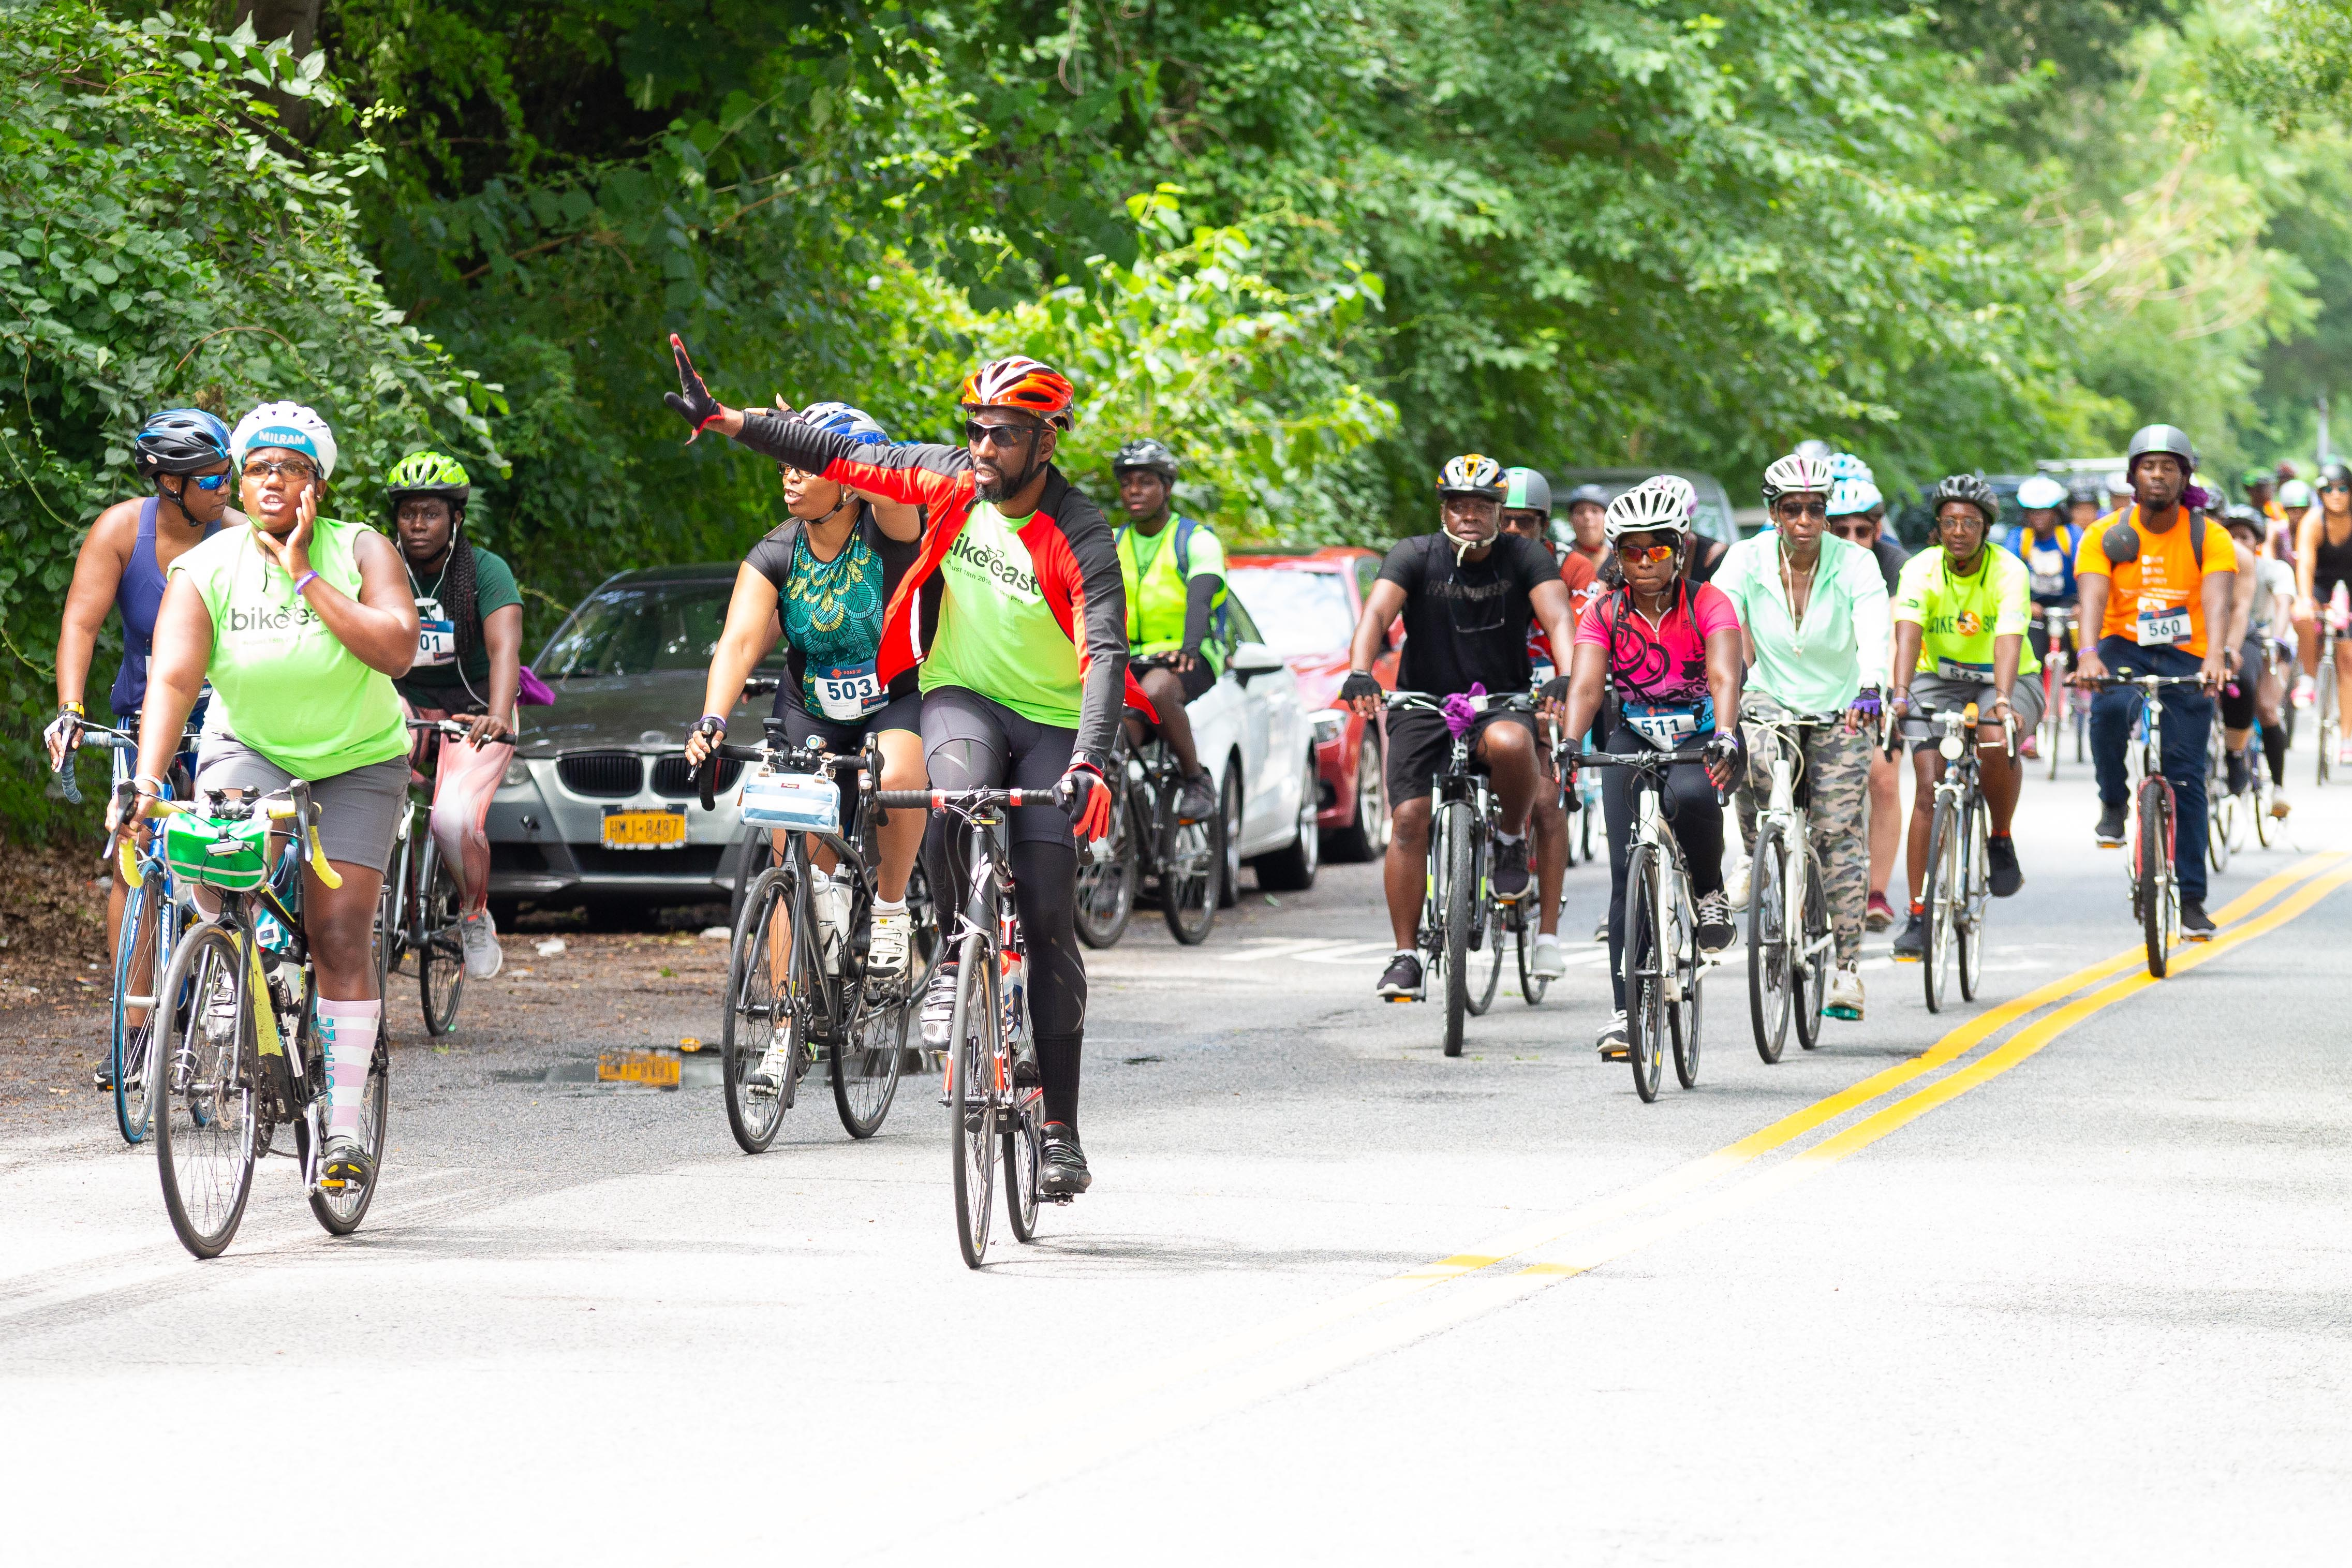 BIKE EAST INSPIRES HEALTHY LIVING WITH FREE 20-MILE BROOKLYN BIKE RIDE AND FITNESS FESTIVAL